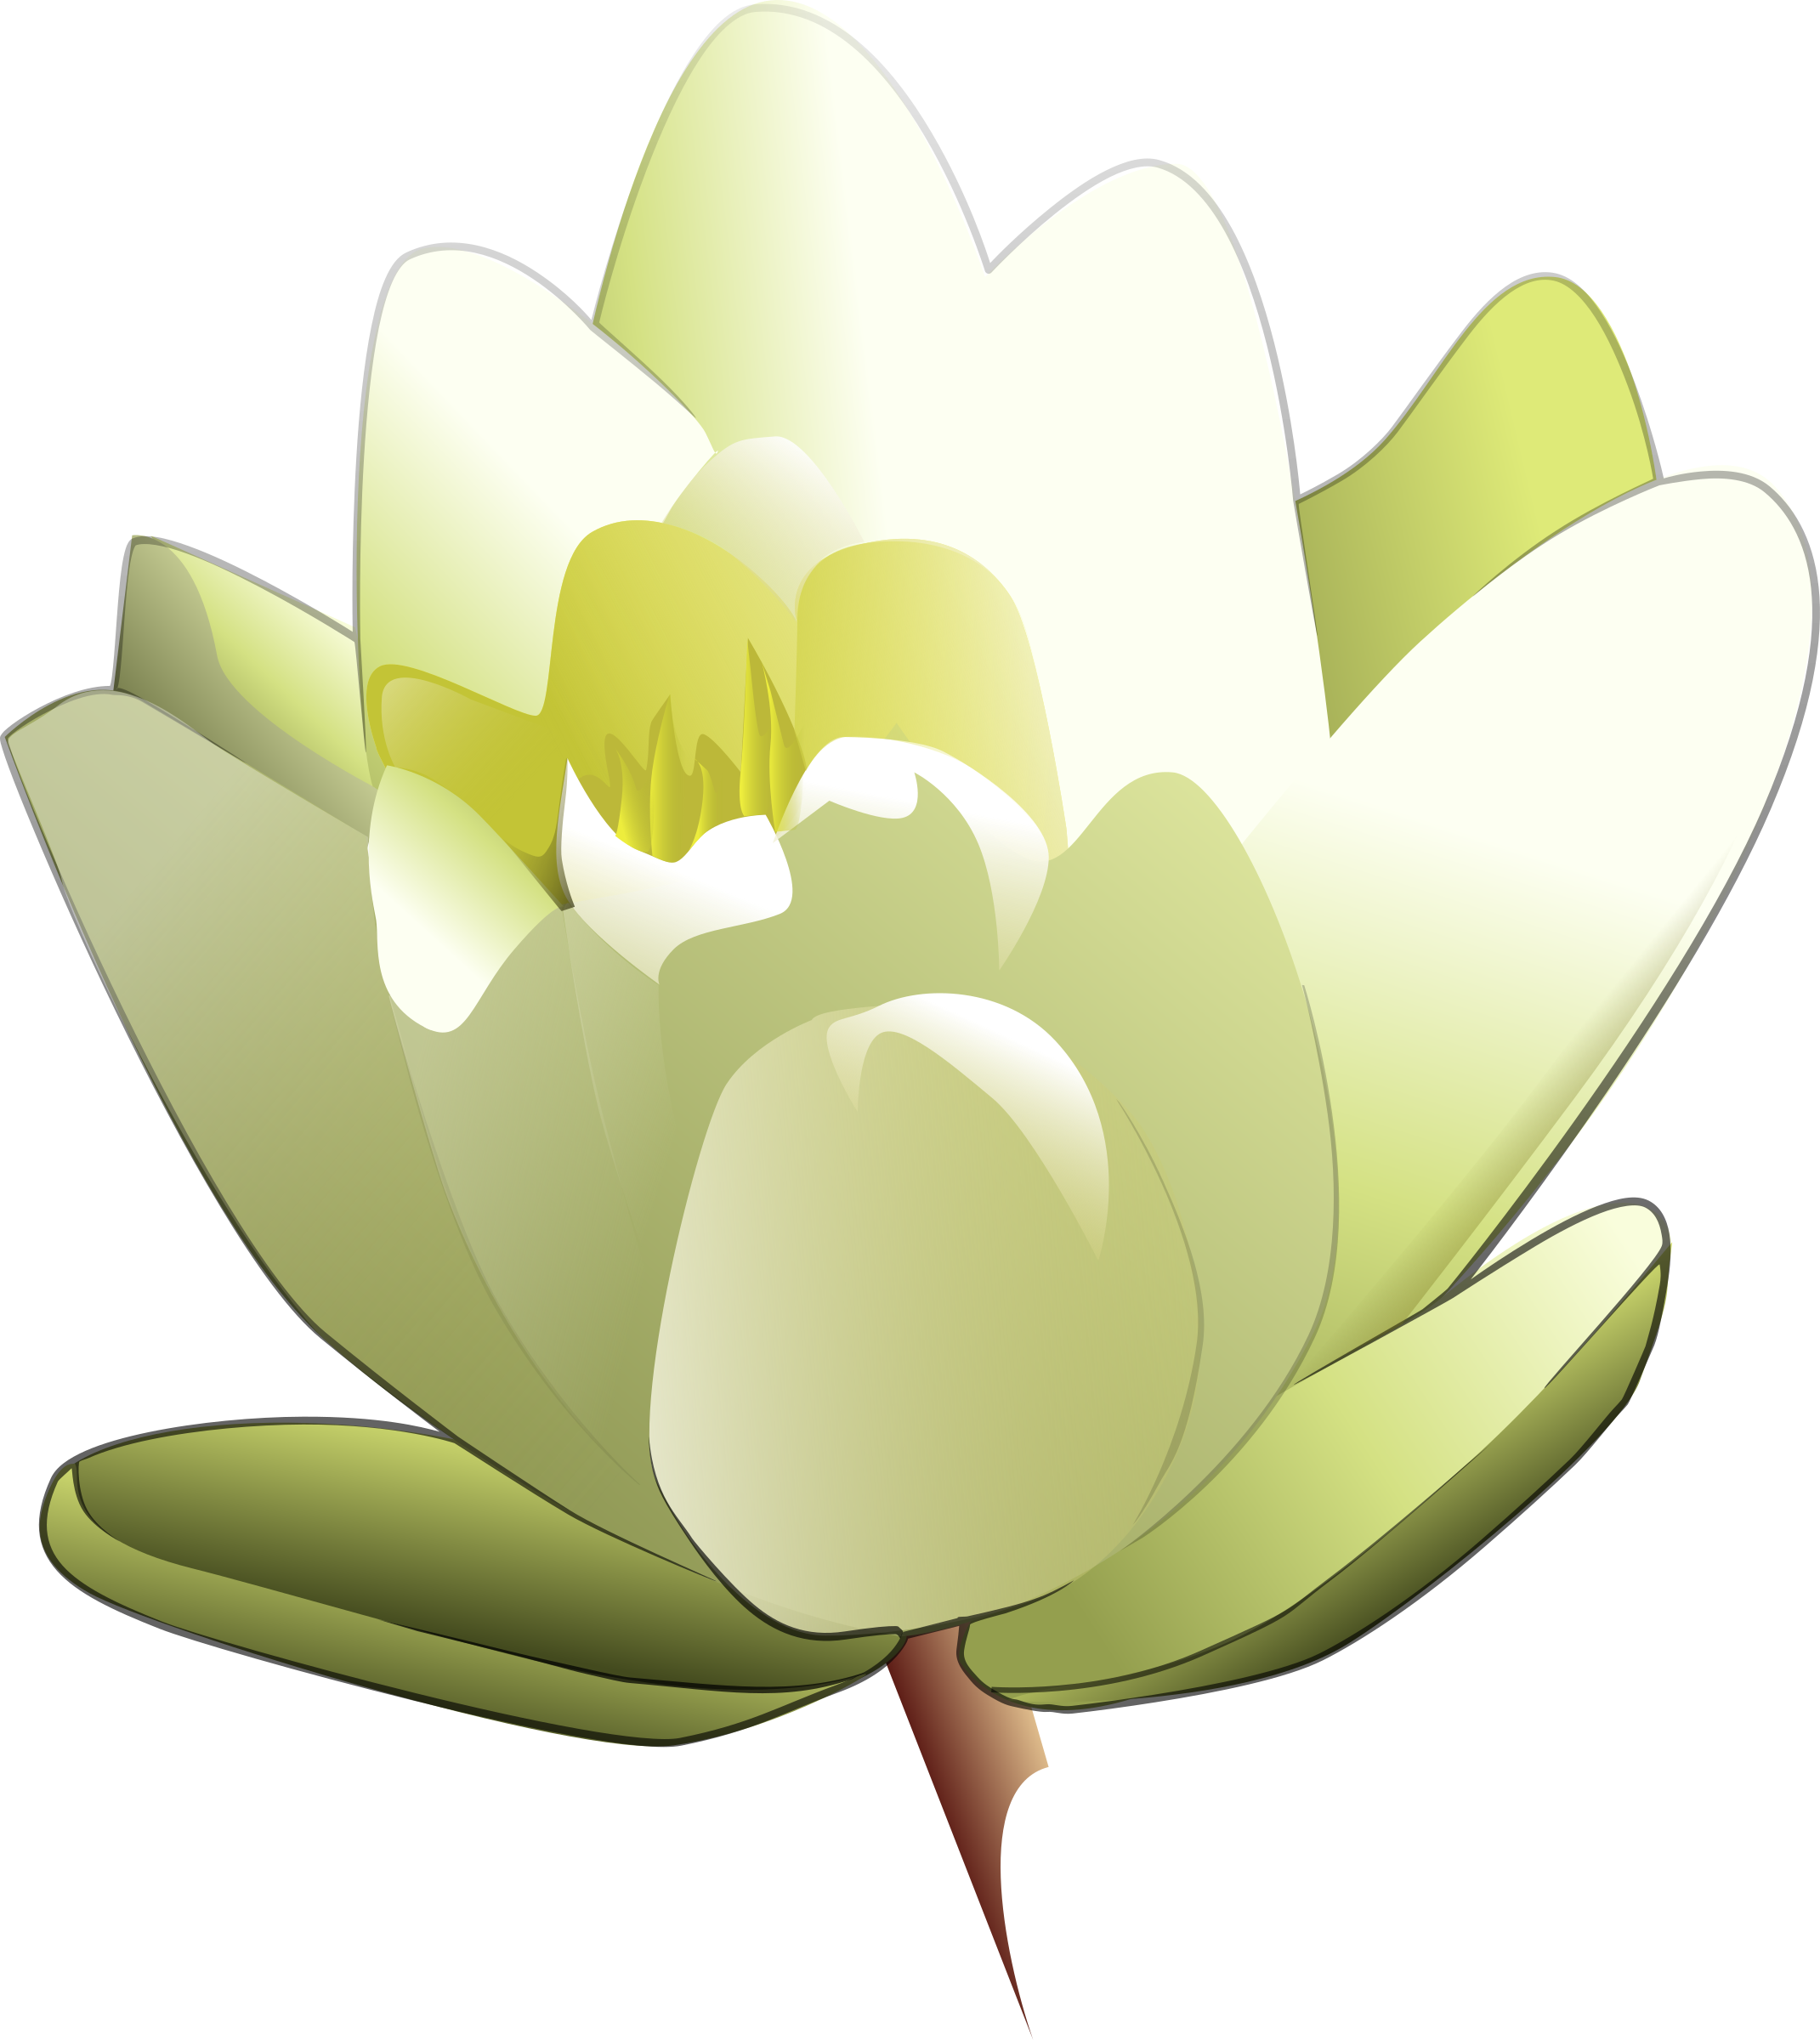 jpg stock Lily clipart animated. Water big image png.